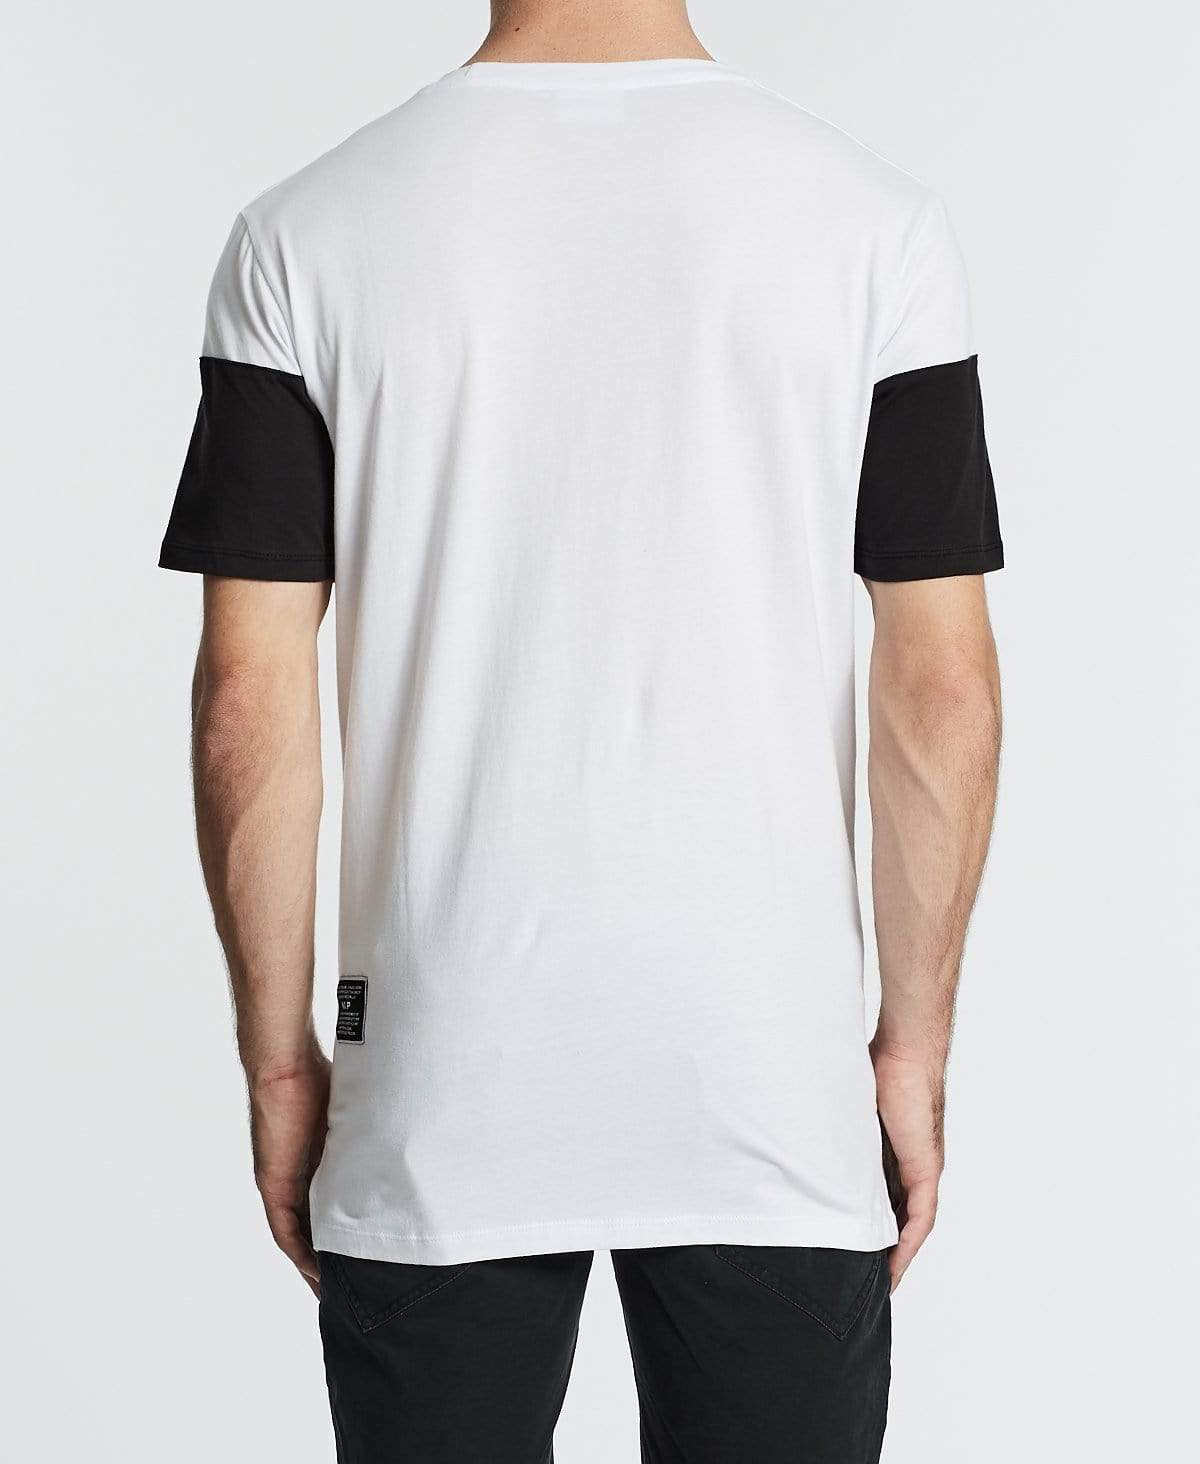 Nena & Pasadena Frontal Hybrid Fit T-Shirt White